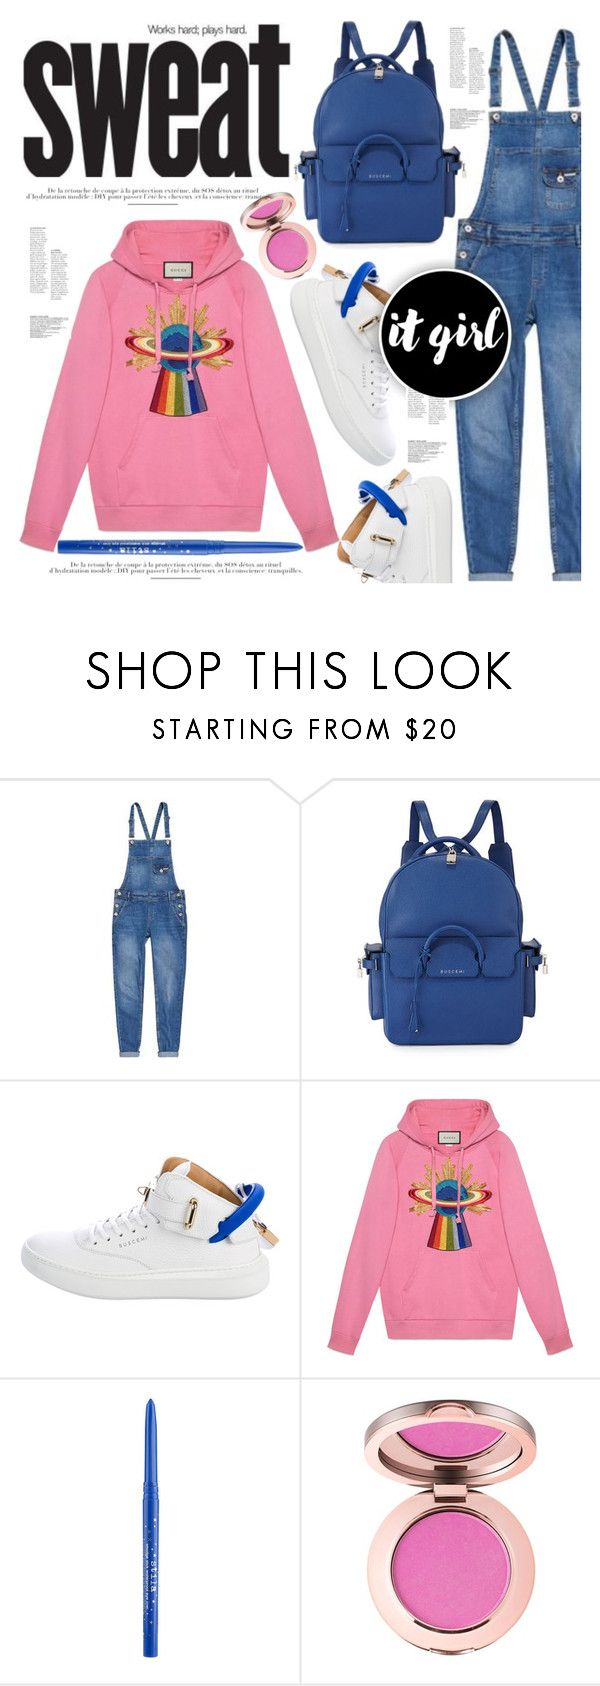 """stop sweatin me."" by mercimasada ❤ liked on Polyvore featuring Superdry, BUSCEMI, Gucci, Stila, denim, CasualChic, overalls, hoodie, Hoodies and casual"